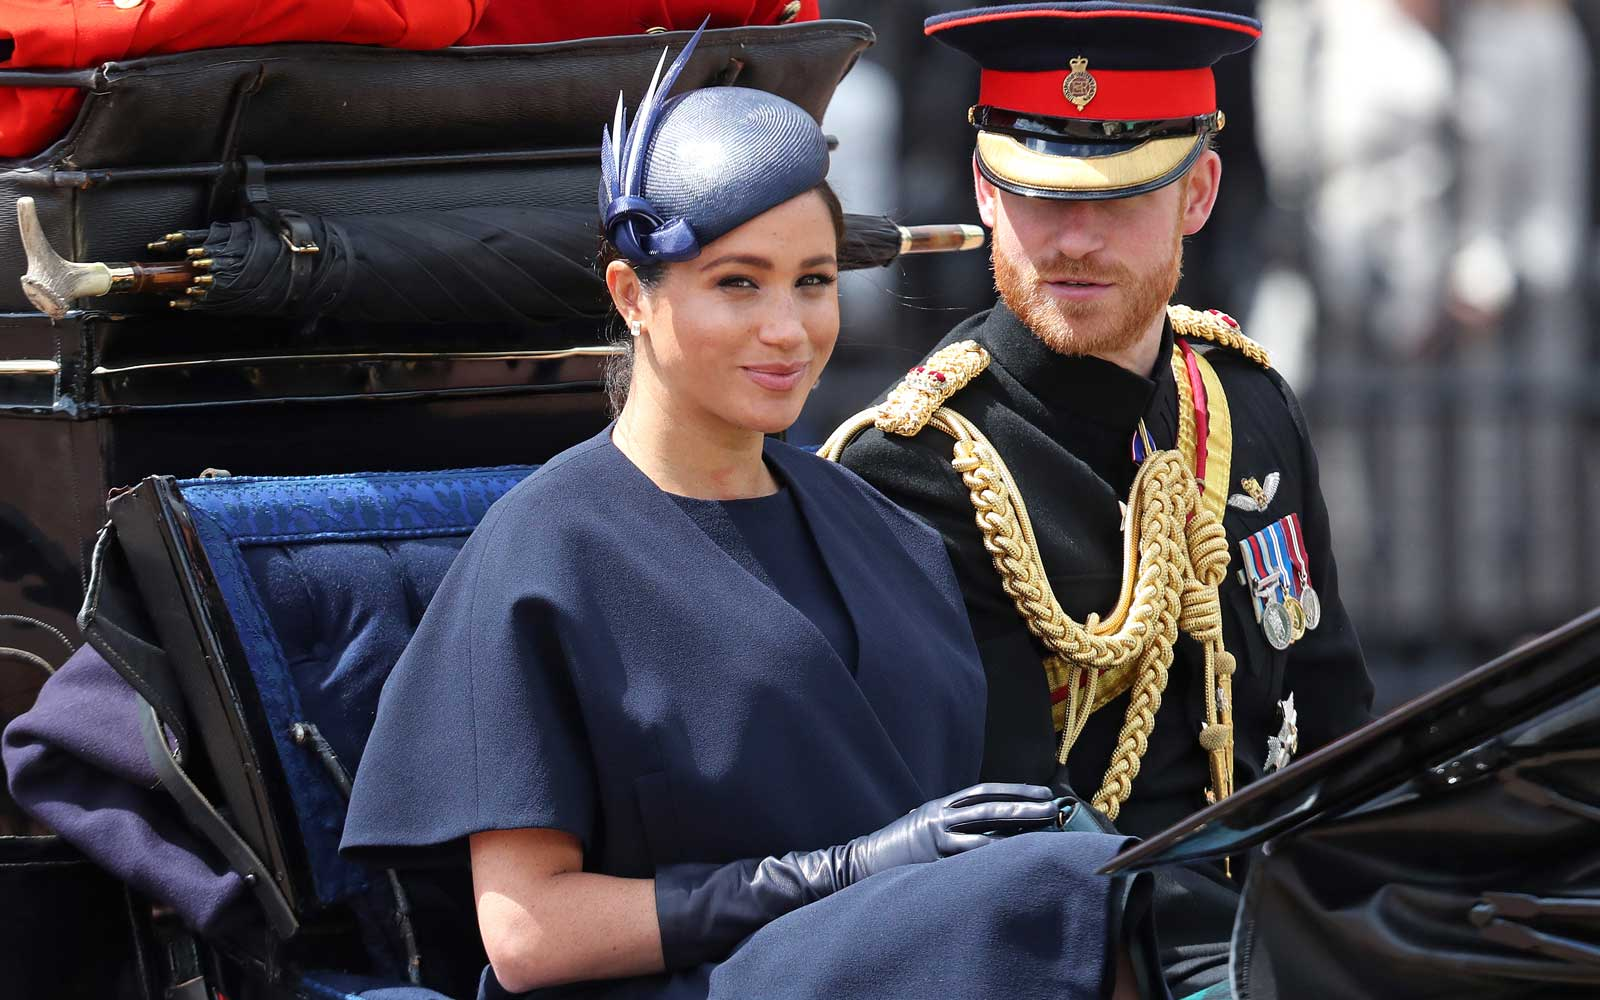 These Are the 15 Instagram Accounts Prince Harry and Meghan Markle Chose to Follow